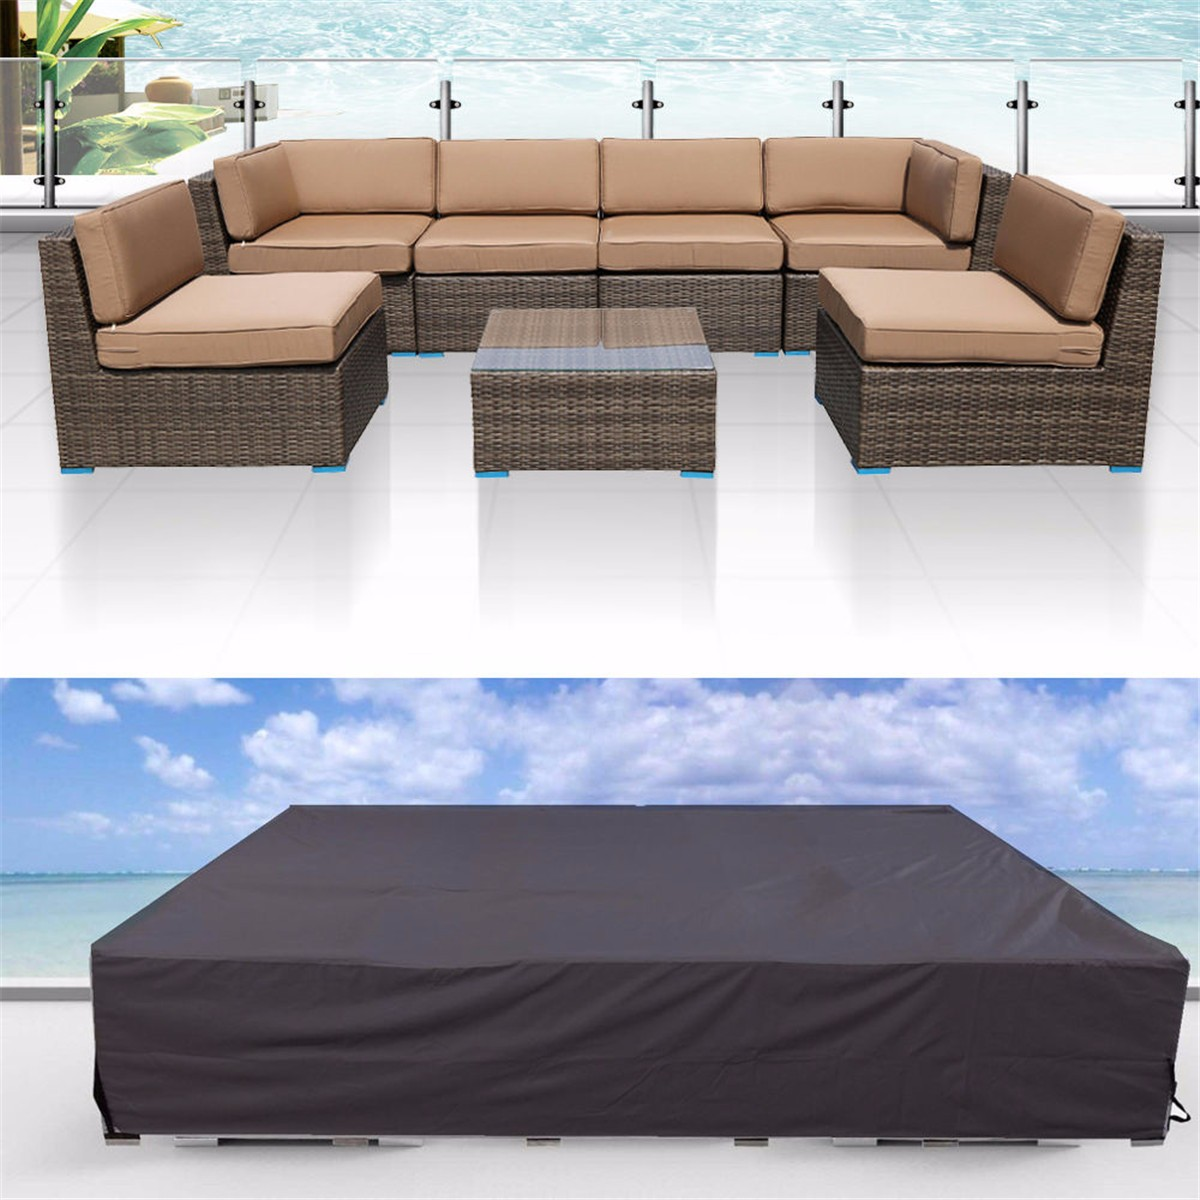 2 size black polyester pvc waterproof sofa couch table